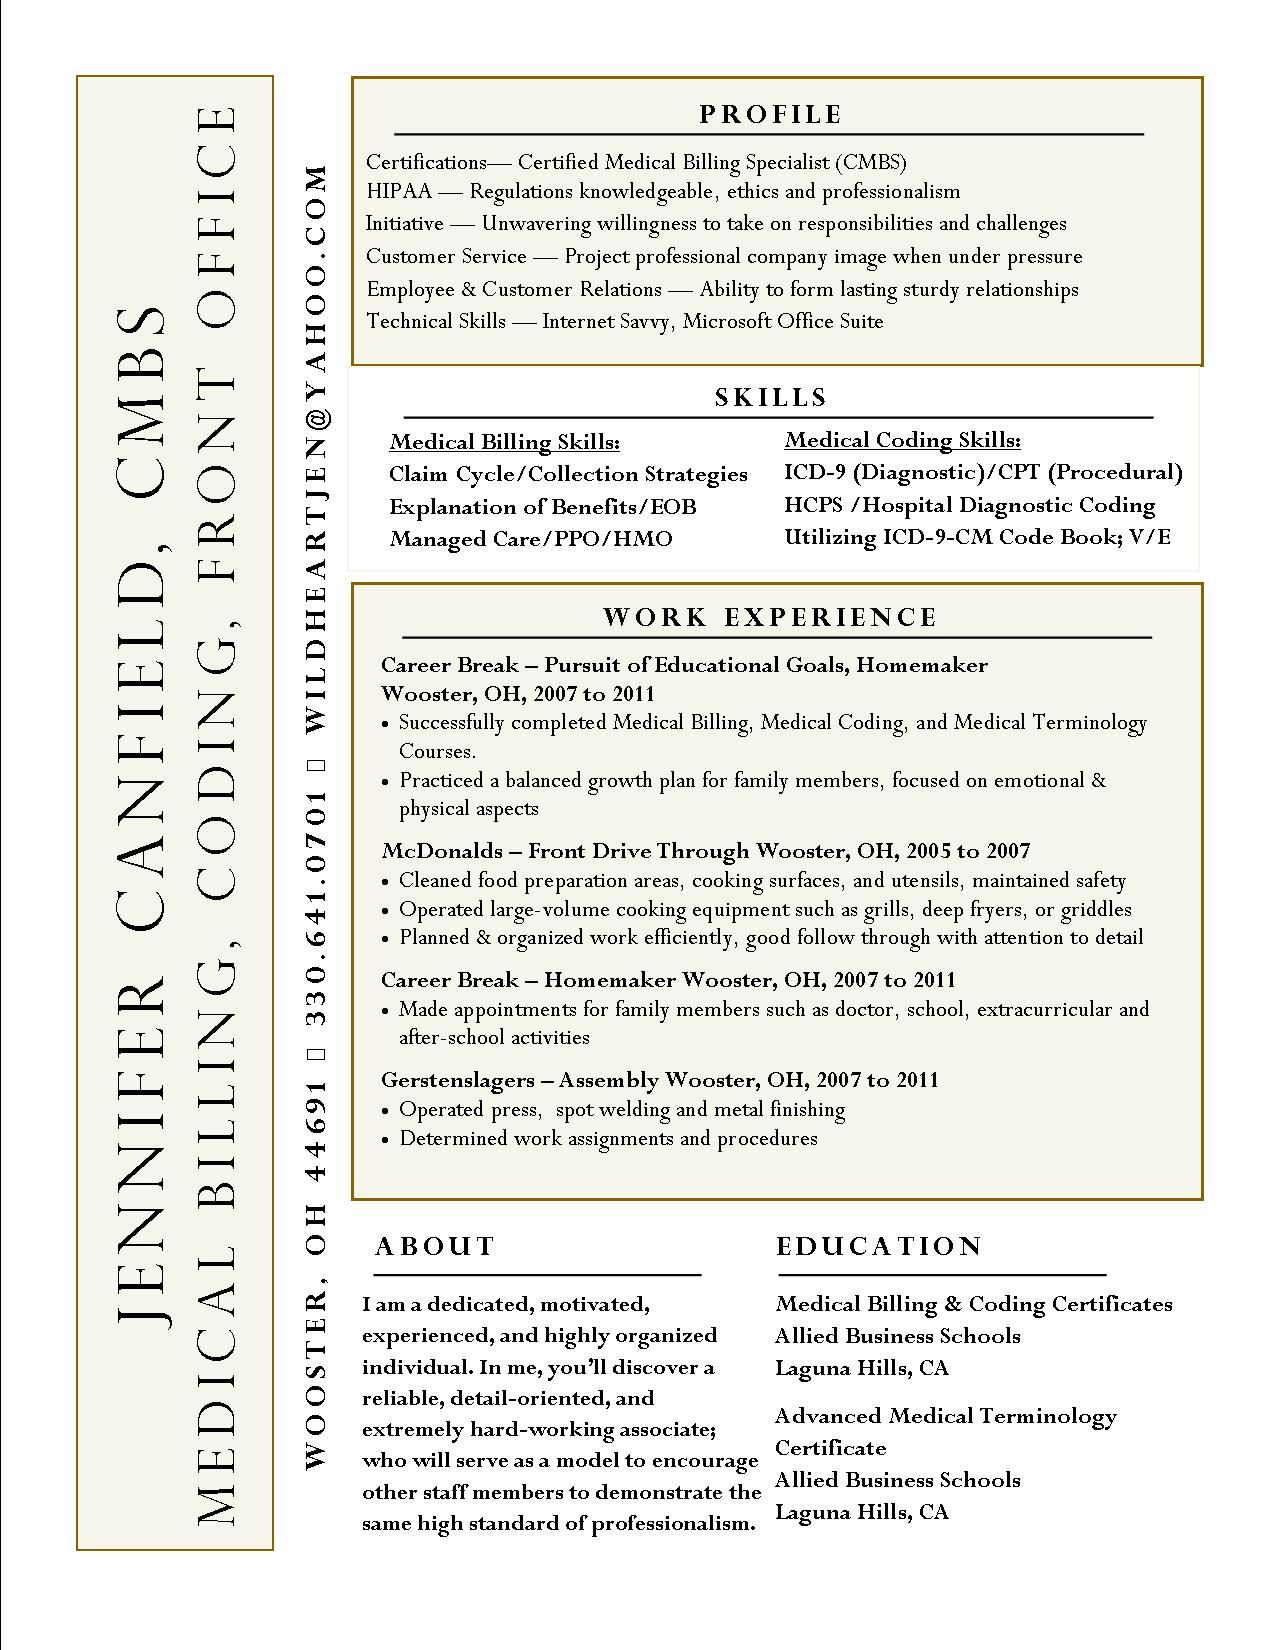 interesting resume idea not sure i like the on the side interesting resume idea not sure i like the on the side difficult to